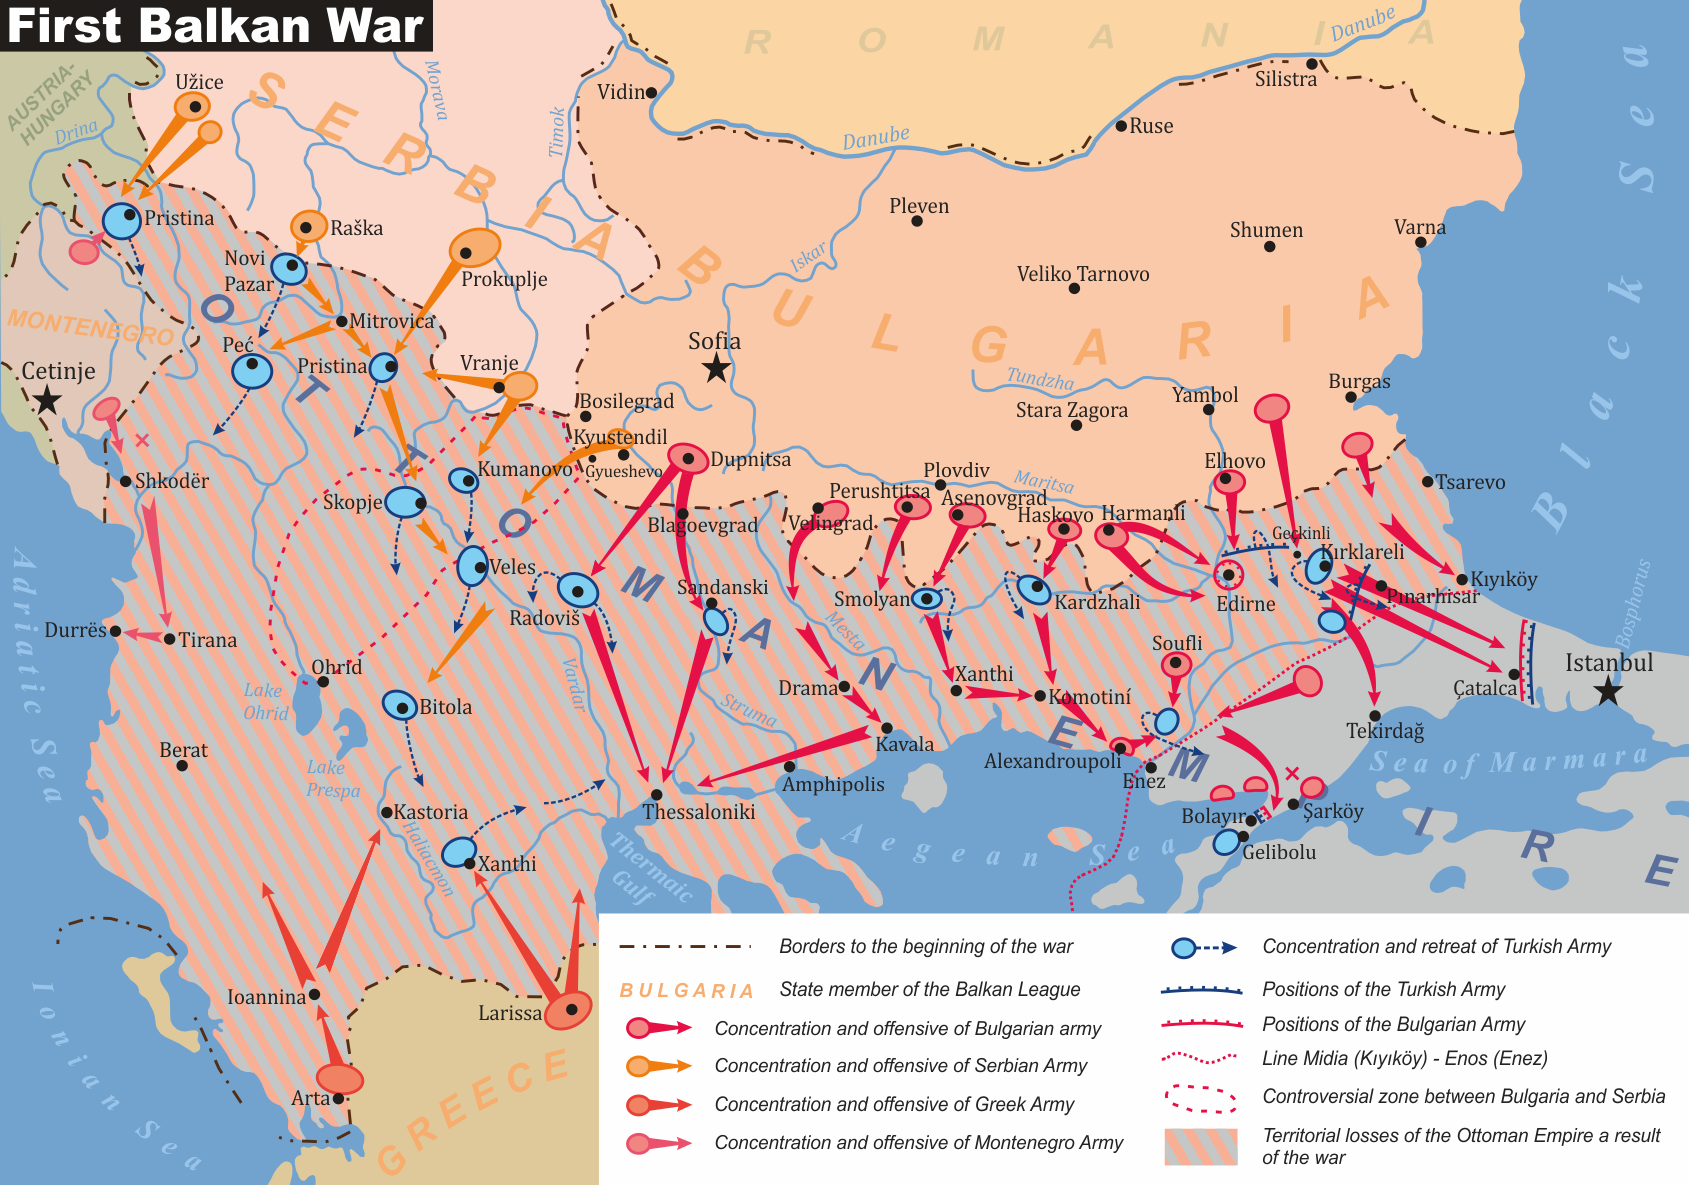 https://upload.wikimedia.org/wikipedia/commons/d/d4/Map_of_the_First_Balkan_War.png